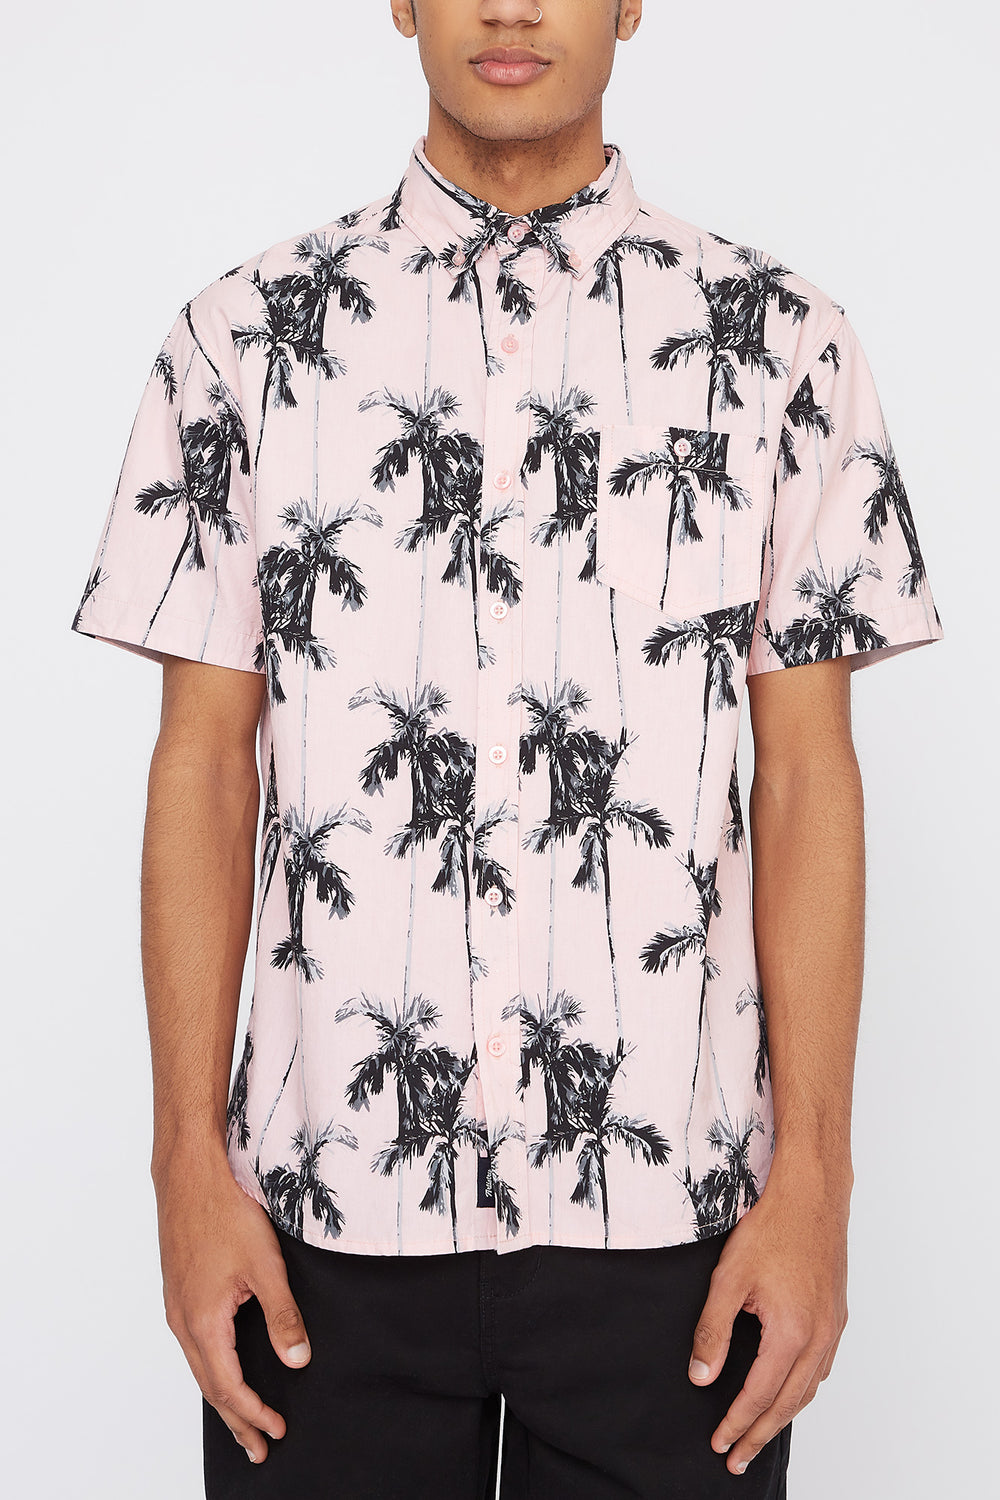 Artistry In Motion Mens Tropical Button-Up Shirt Pink